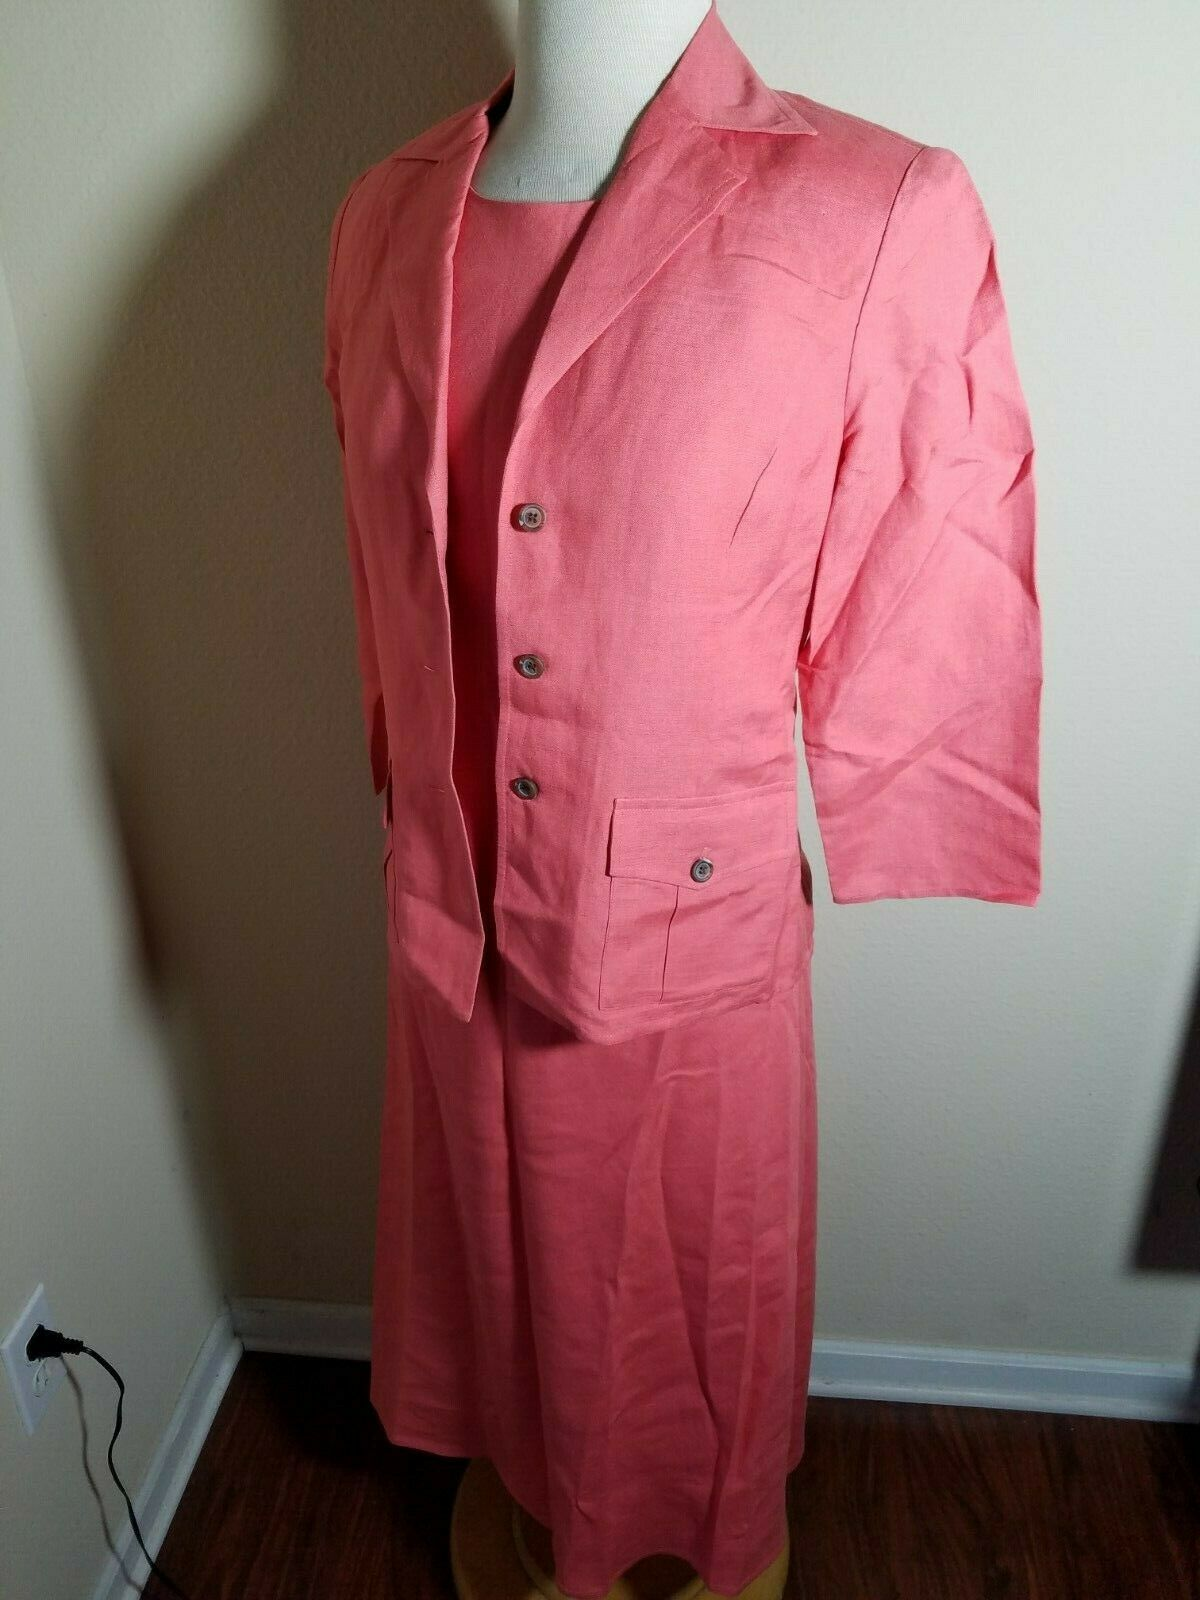 Talbots Petites Women's Dress Set Linen Blend Pink Sleeveless Maxi & Jacket 4 image 5